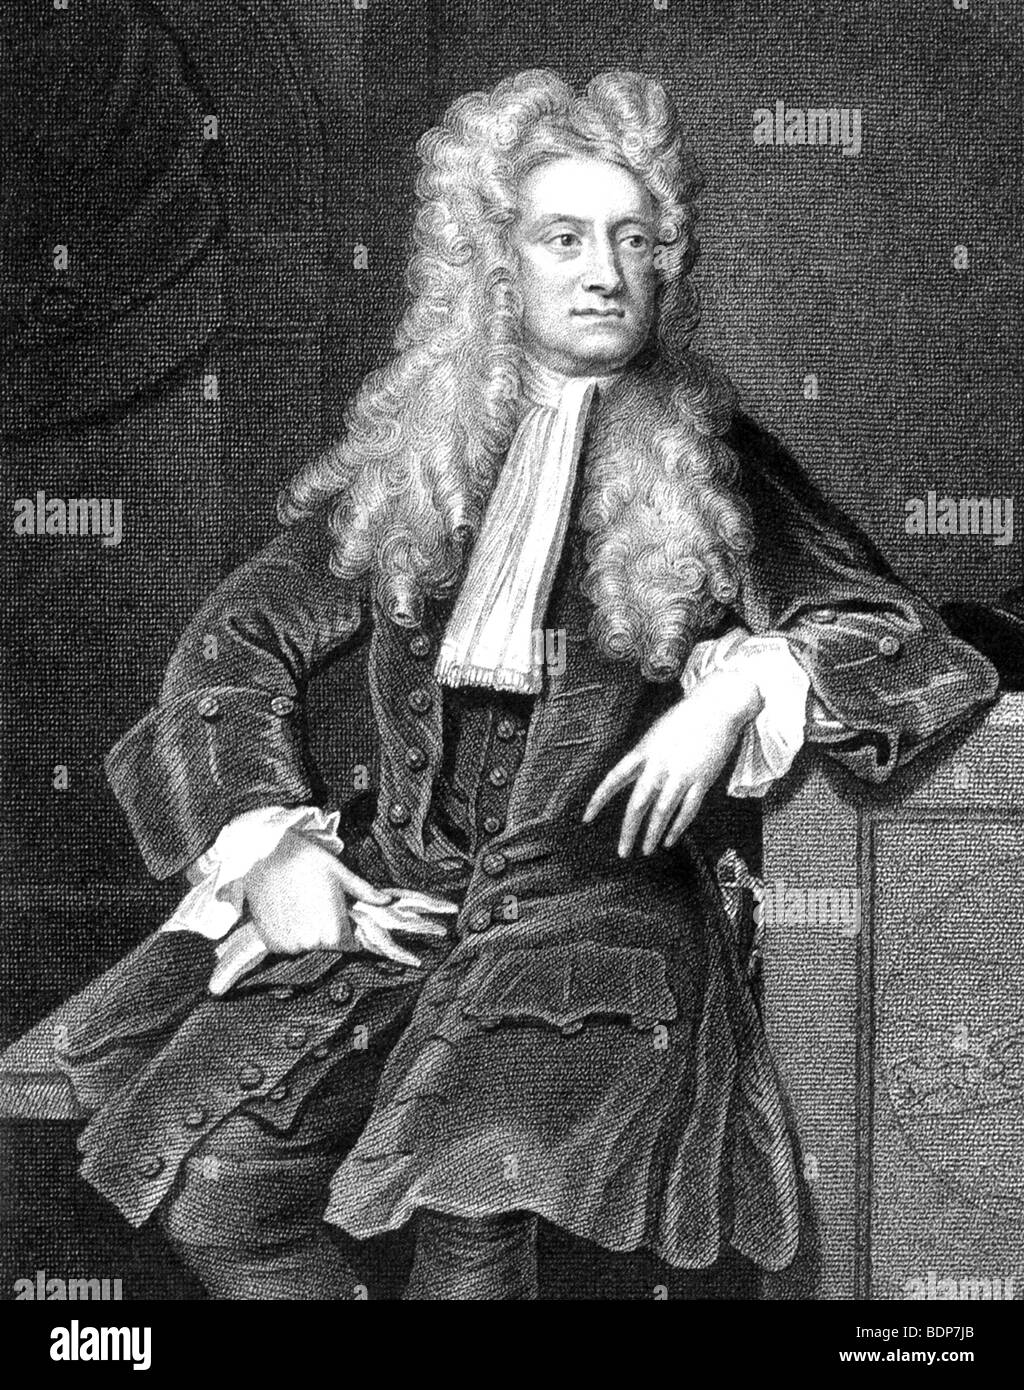 SIR ISAAC NEWTON  - English scientist and mathematician 1642-1727 - Stock Image